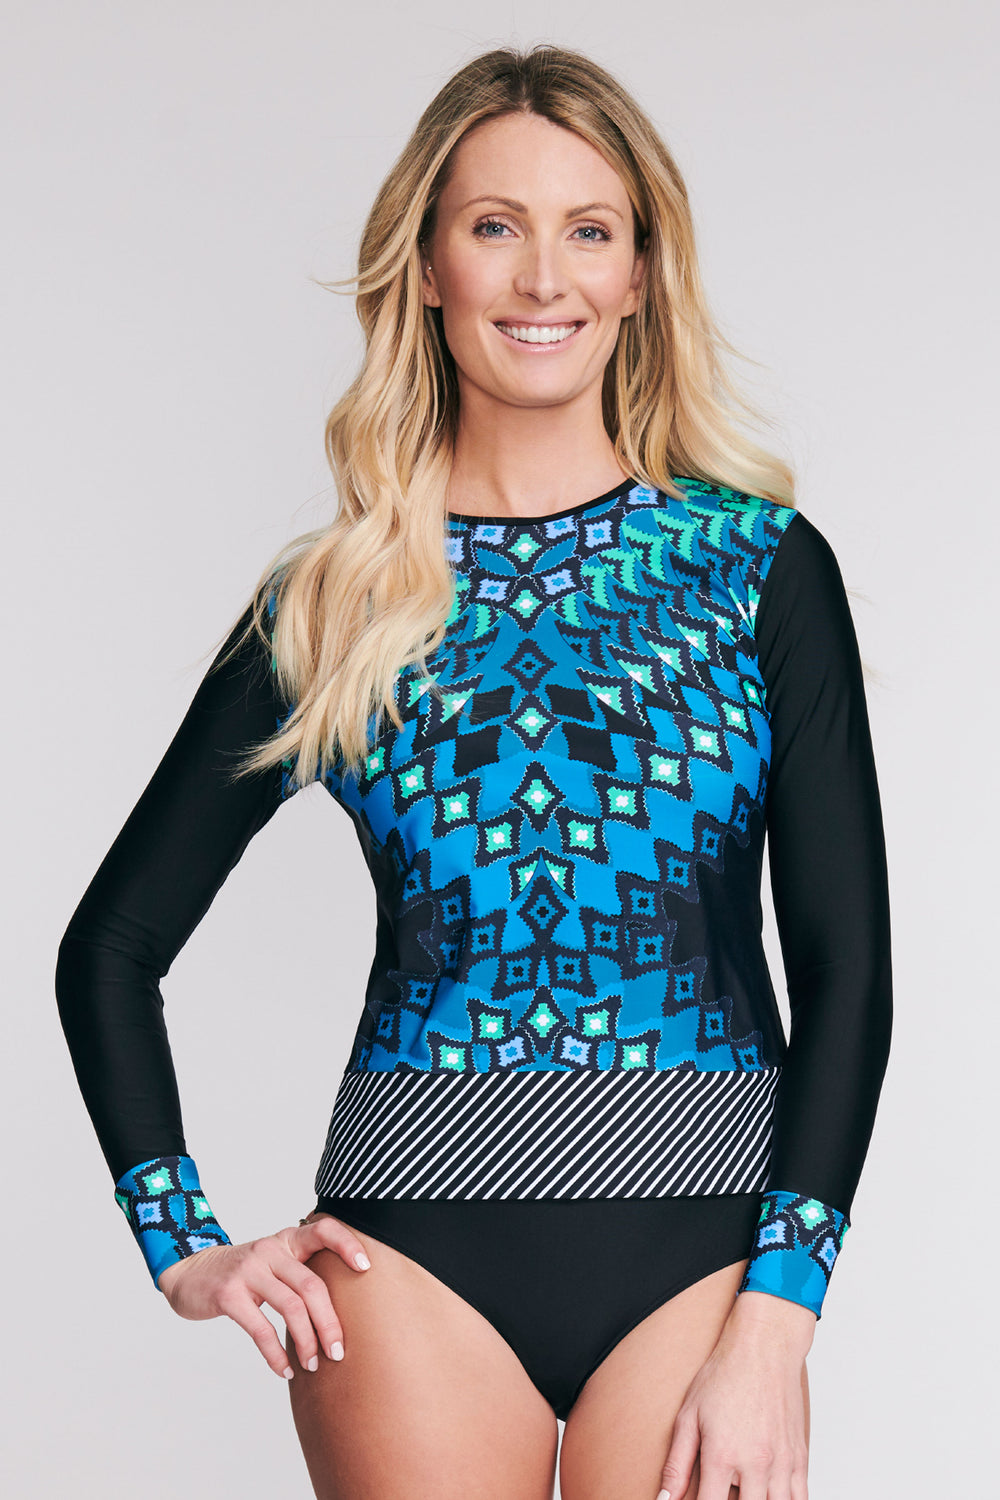 LONG SLEEVE RASHGUARD COVERUP IN DIAMOND MIRROR BY MAZU SWIM